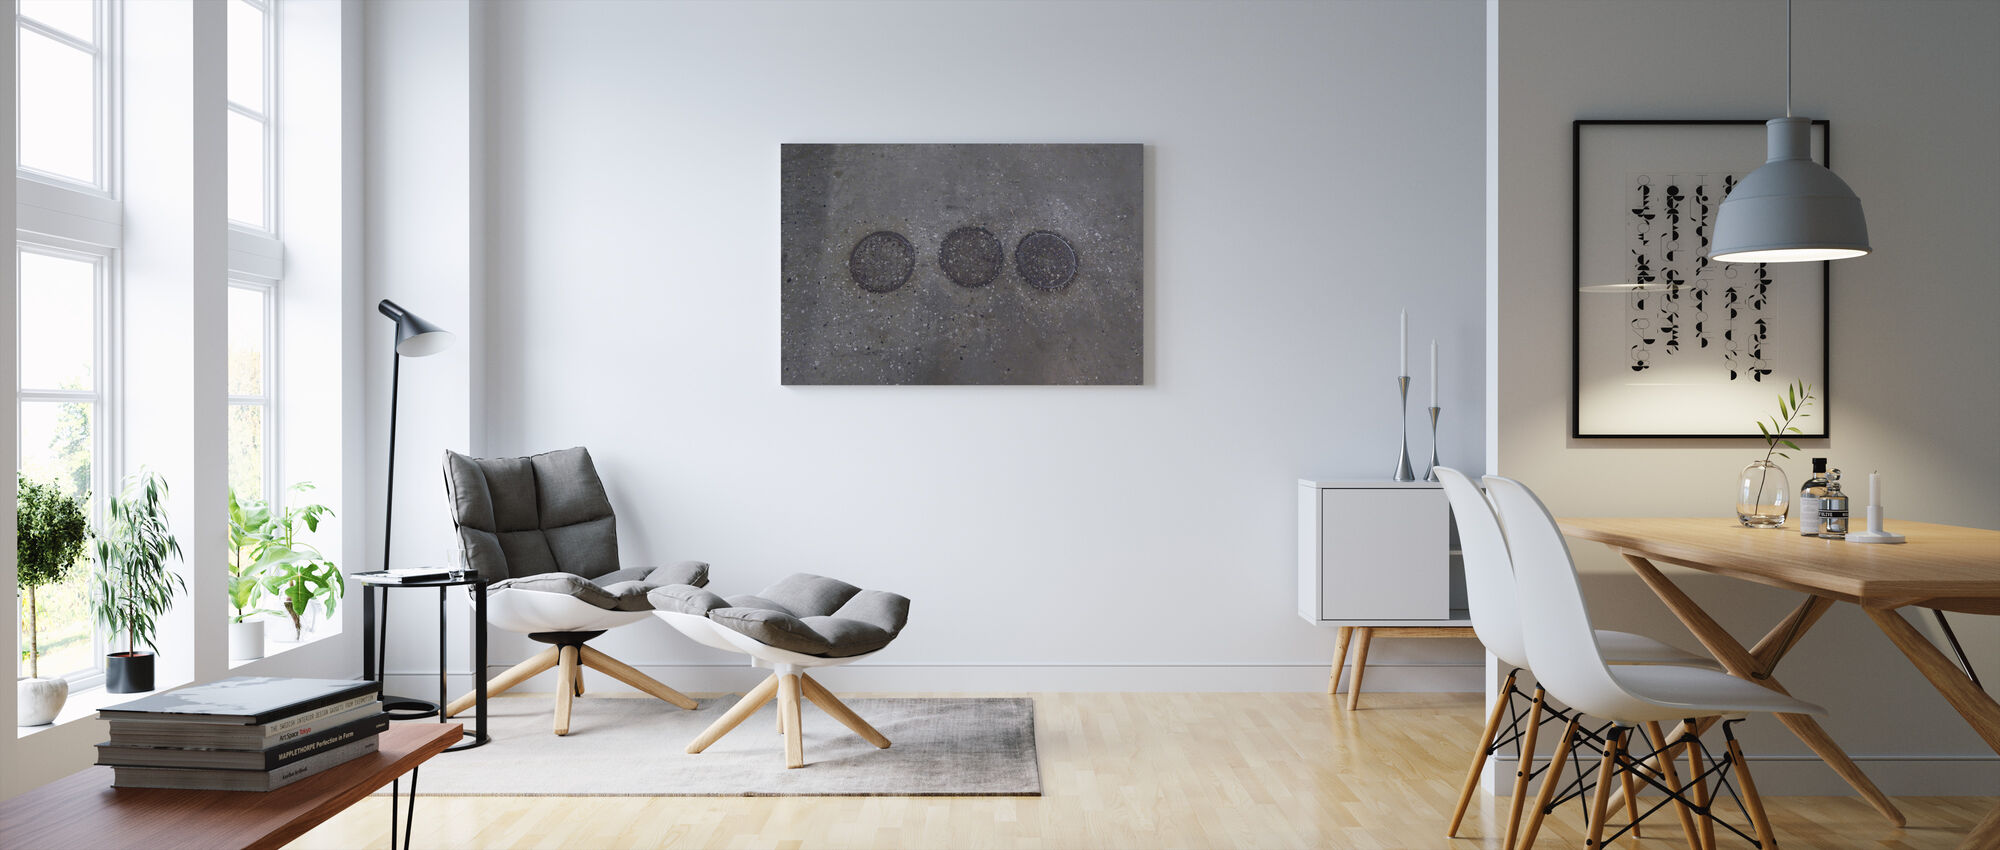 Concrete Floor on Wall 6 - Canvas print - Living Room